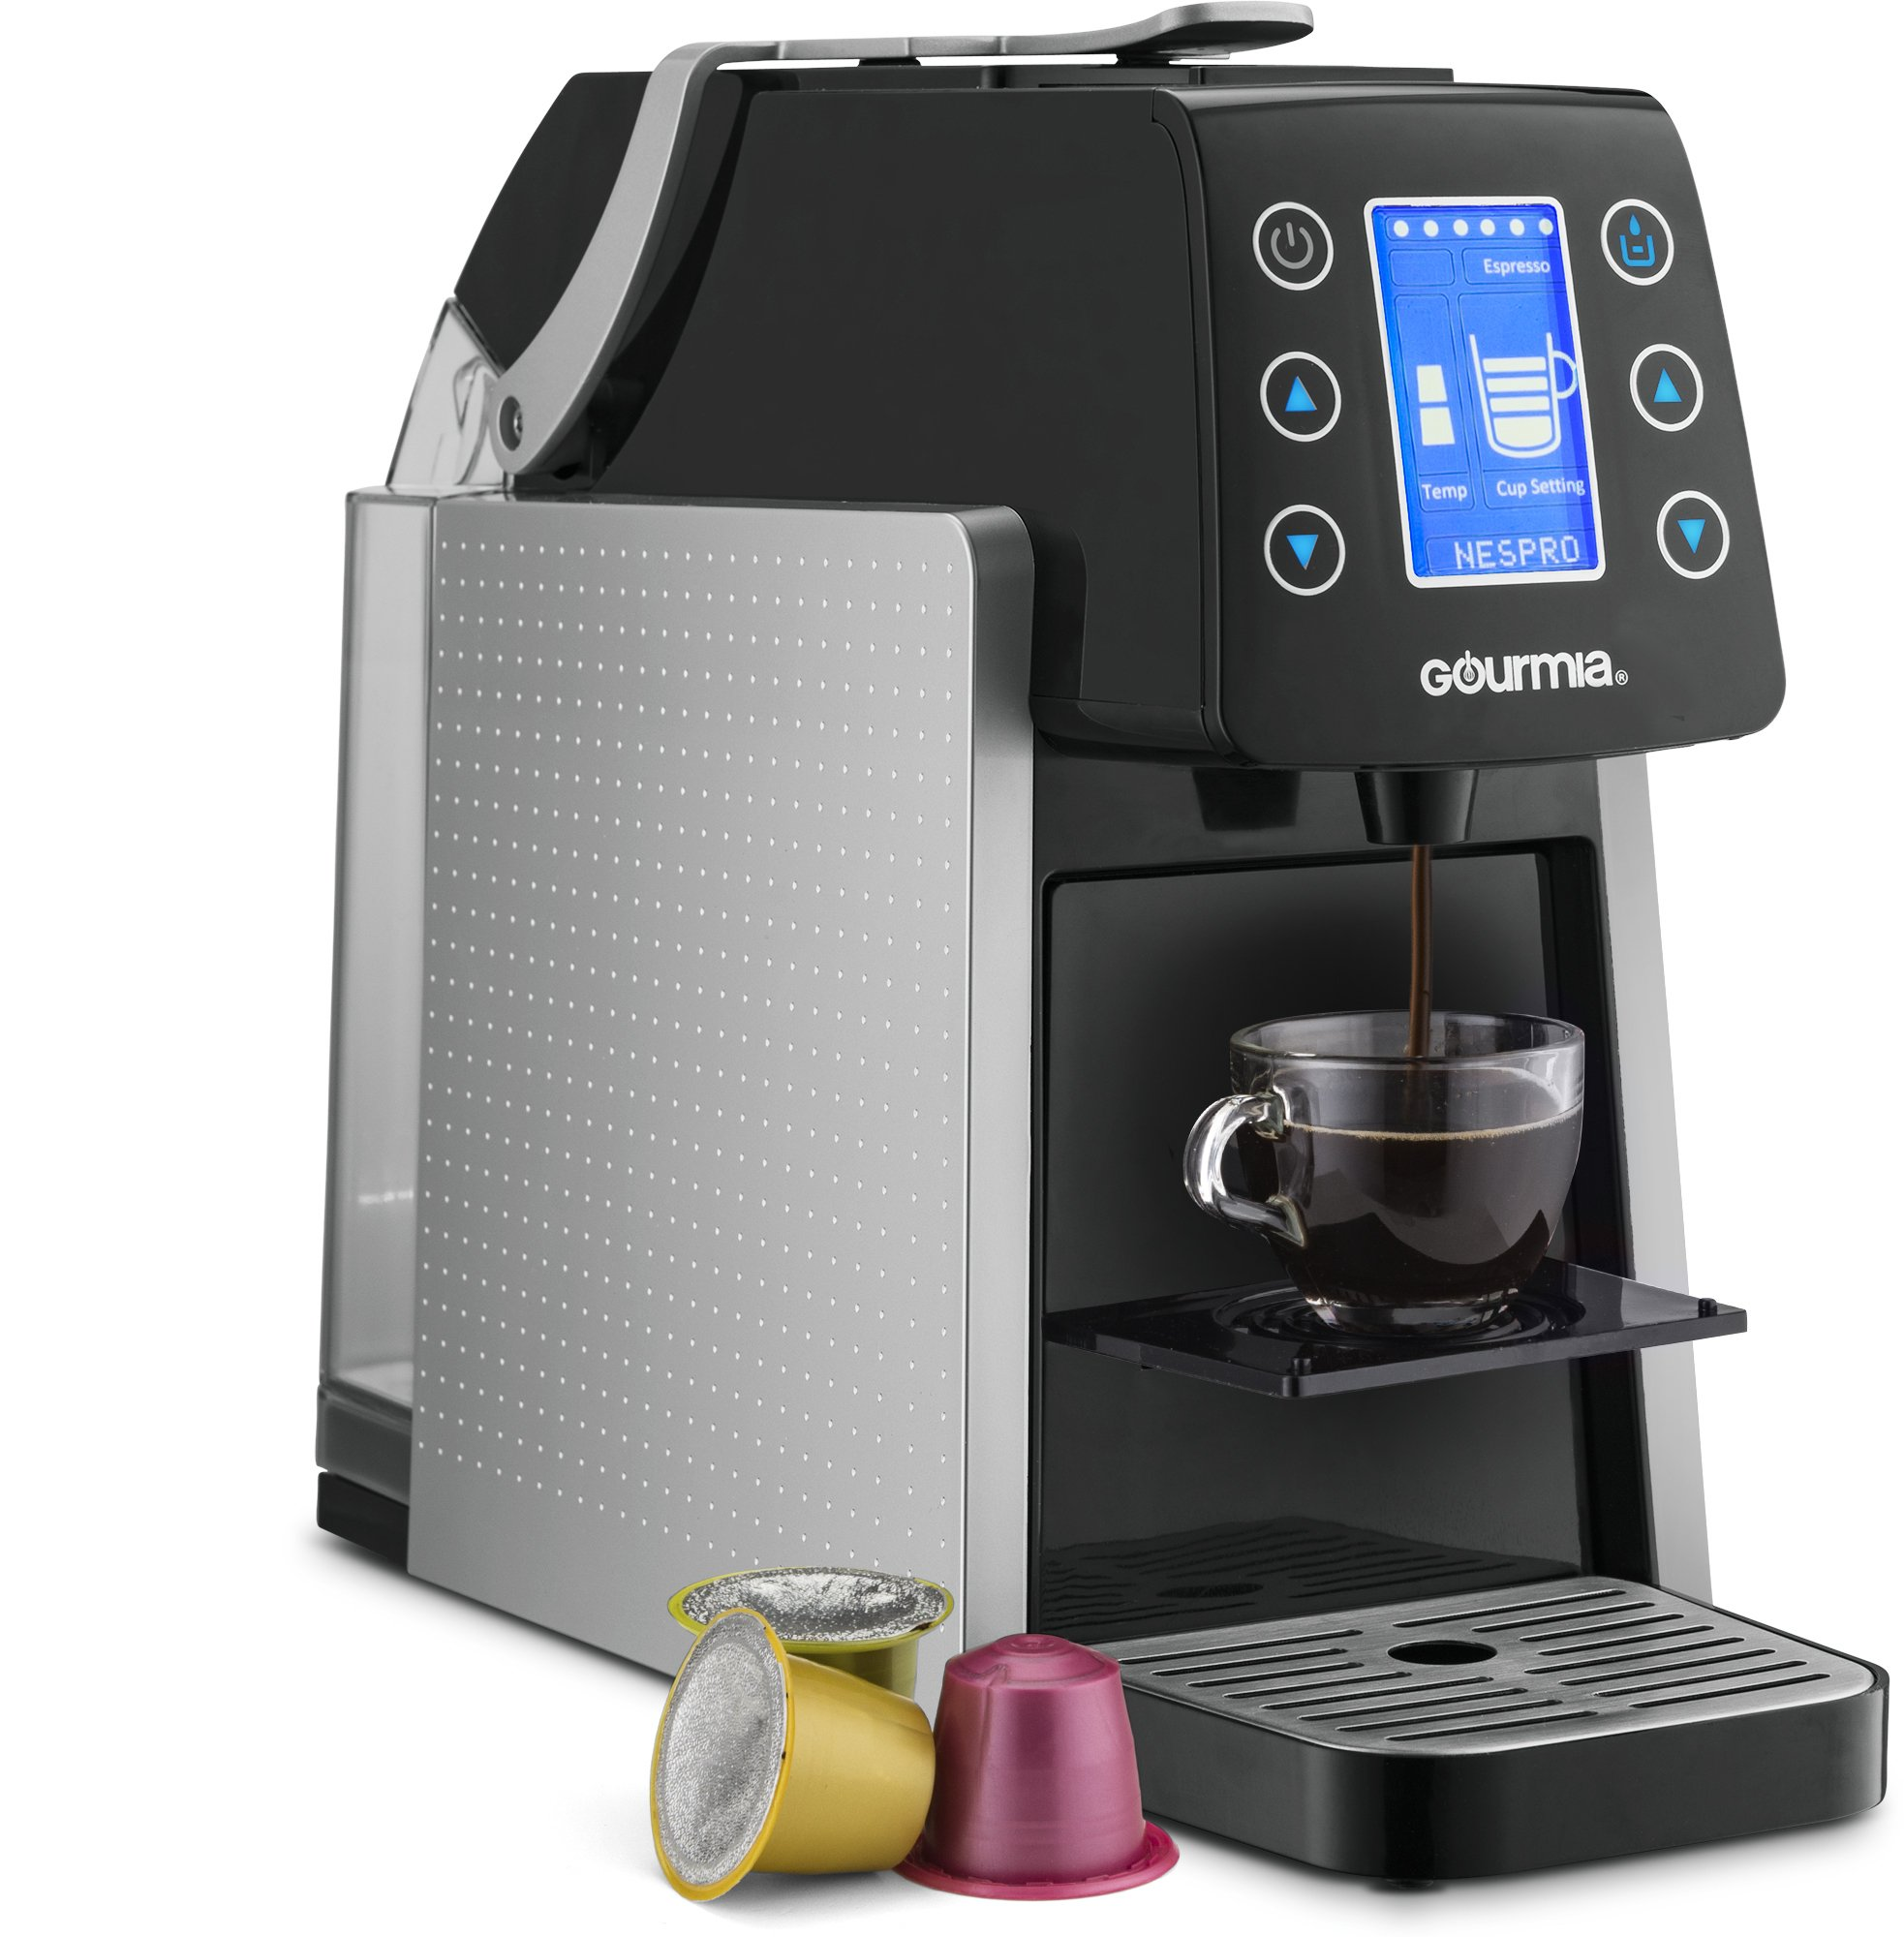 Gourmia GCM5000 One Touch Multi Capsule Coffee Machine, Compatible With Nespresso, K-Cup Pods & More, Built In Milk Frothier, Adjustable Temperature & Size, Digital Display - Silver by Gourmia (Image #2)